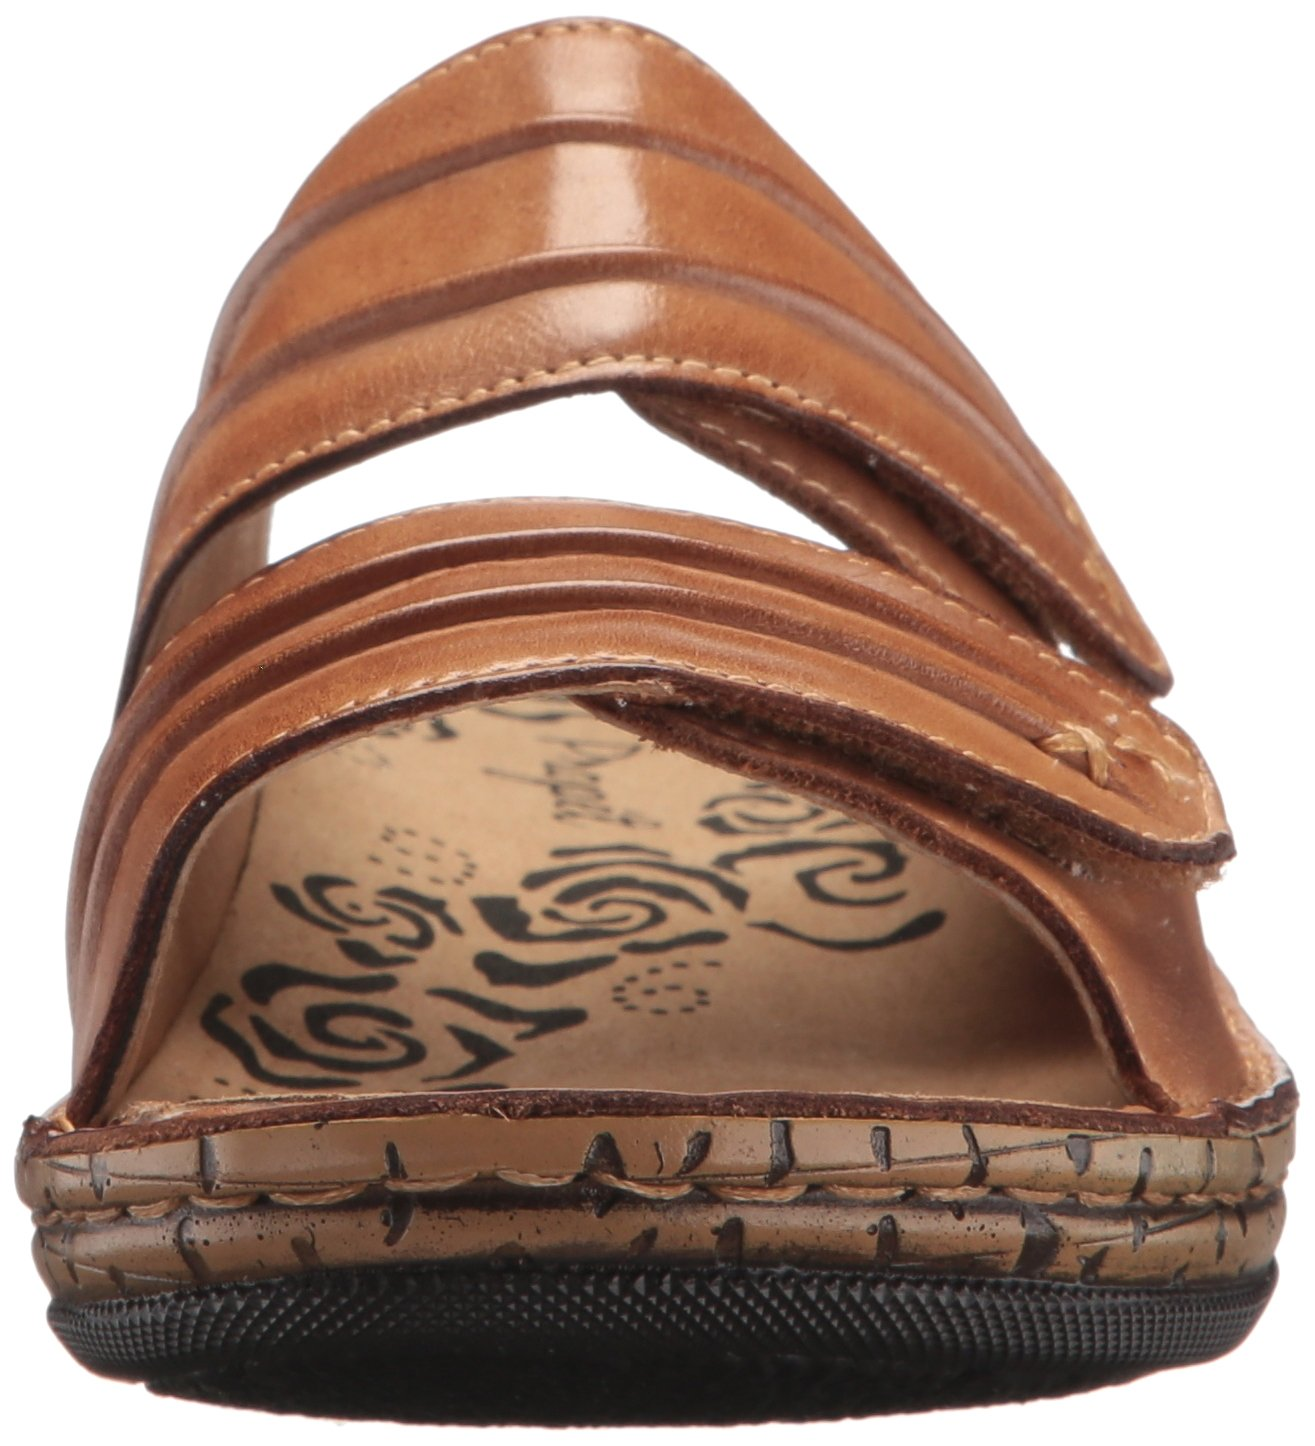 Propet Women's June Slide Sandal B072M5DP4R 9 2E US|Tan